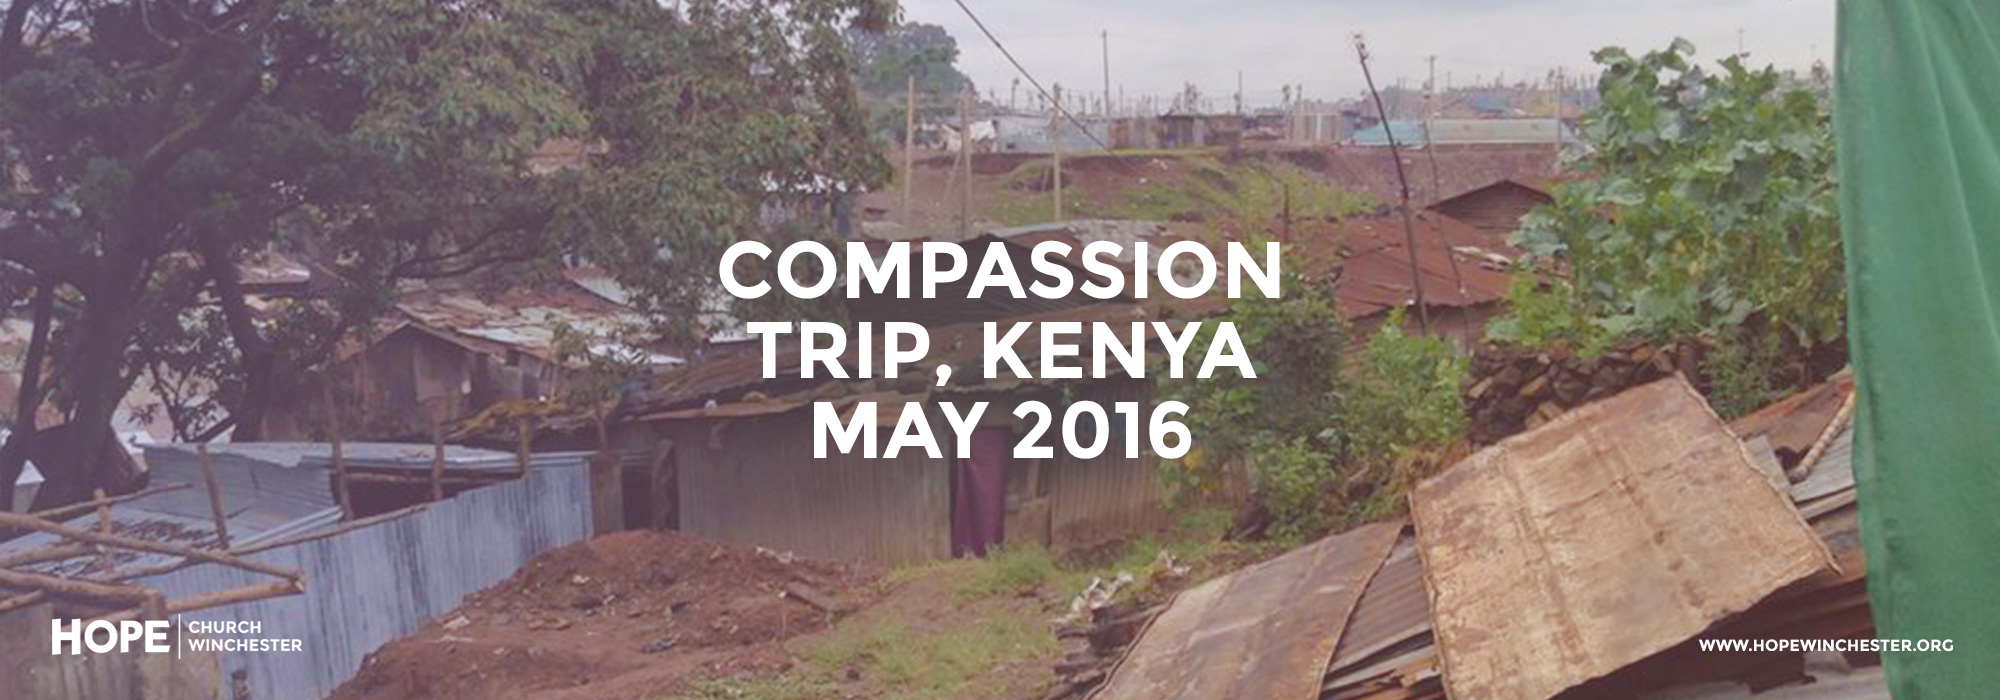 W-Events-Compassion-Trip-Kenya